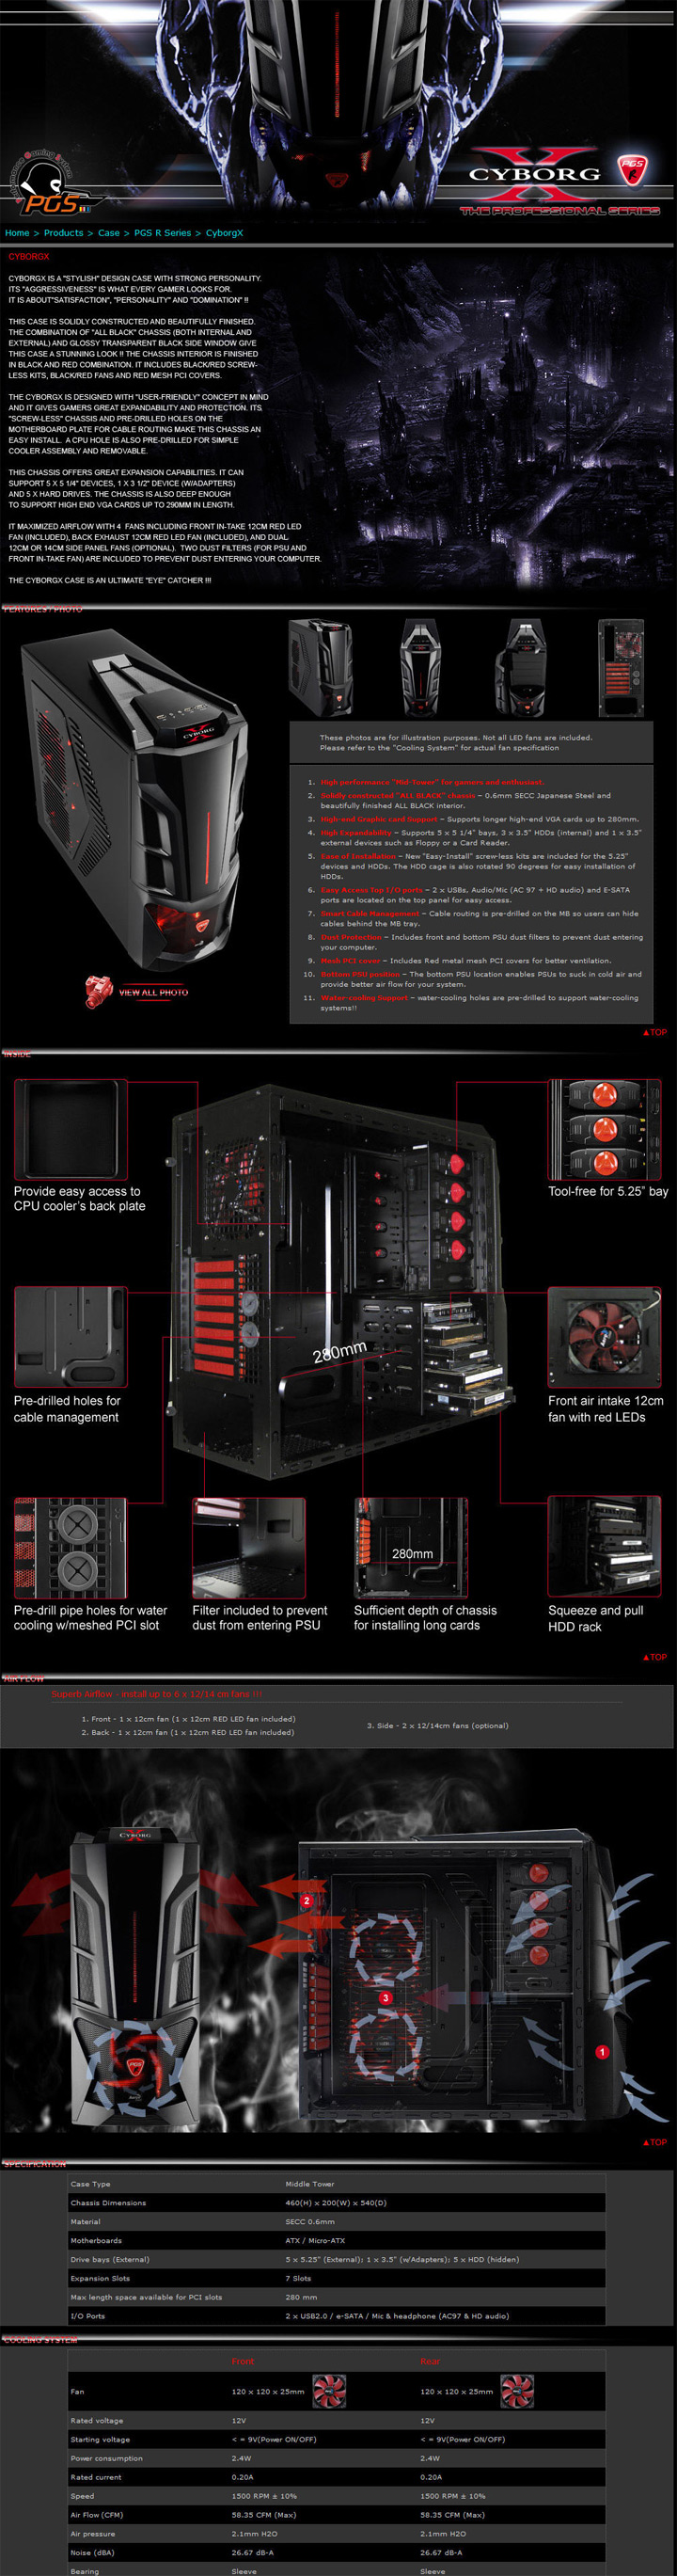 specification1 AeroCool CYBORGX Chassis Review